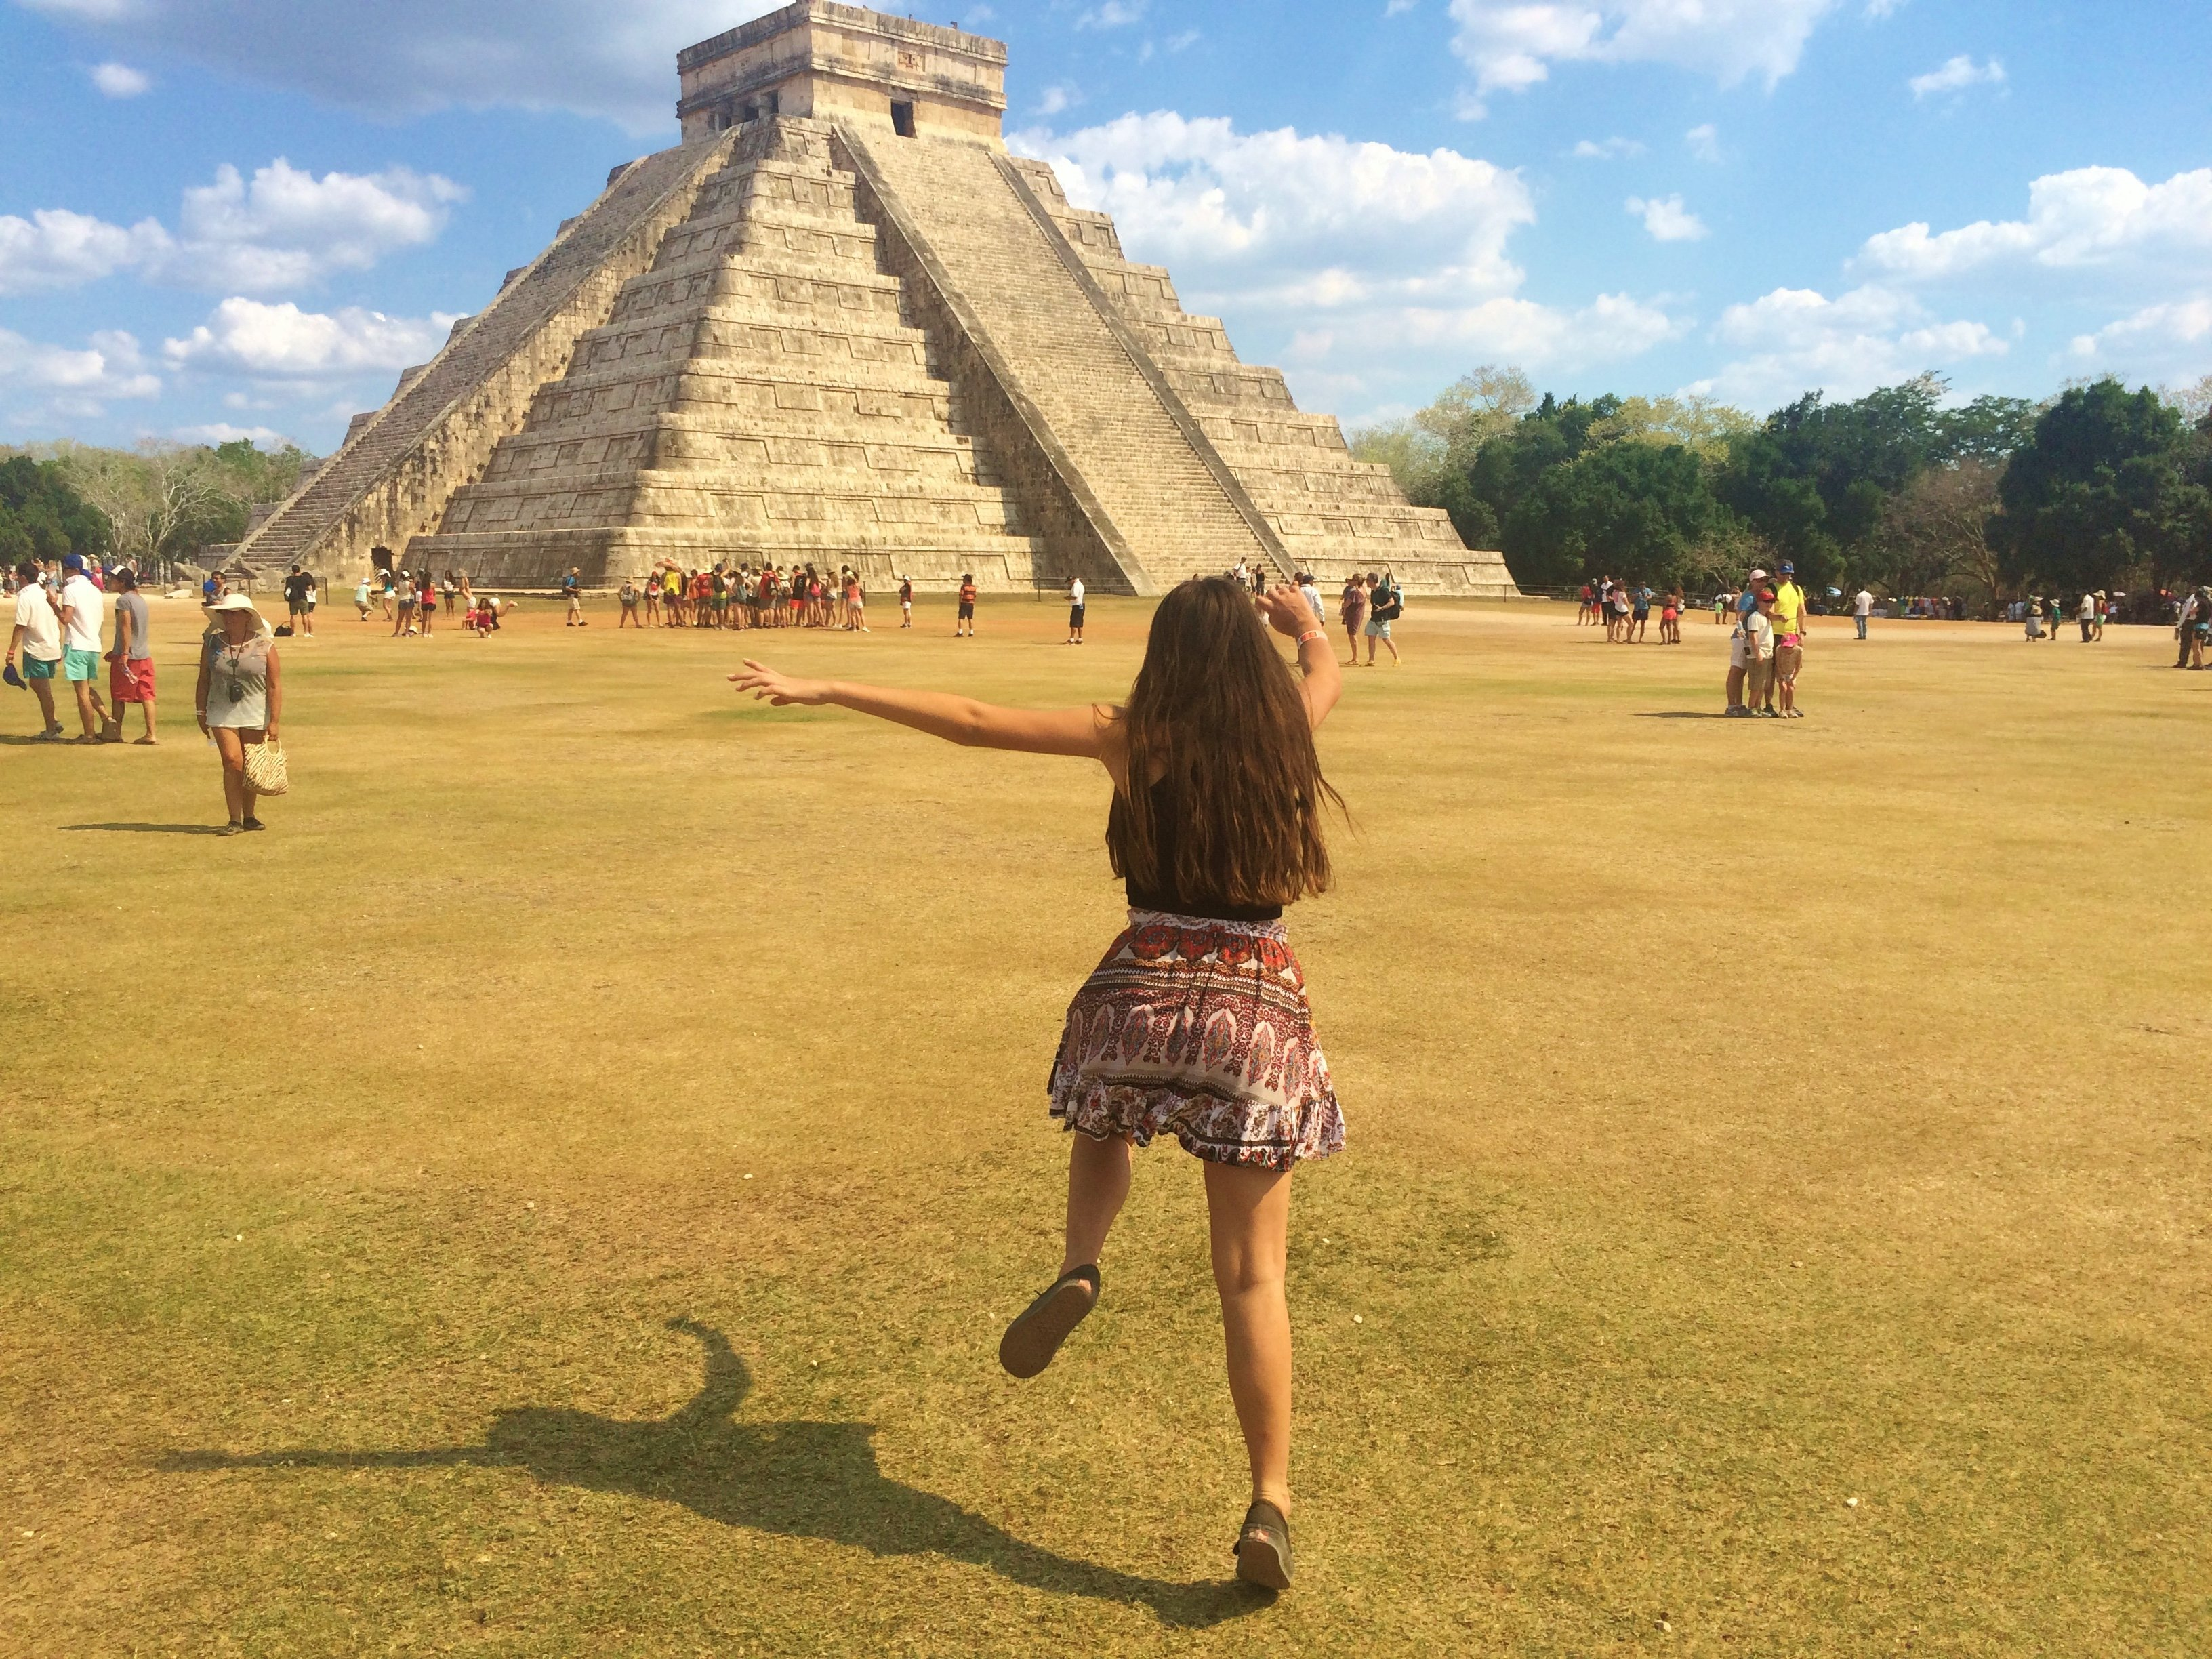 Frolcking around Chichen Itza, Mexico or as i prefer to call it, 'Chicken Pizza'